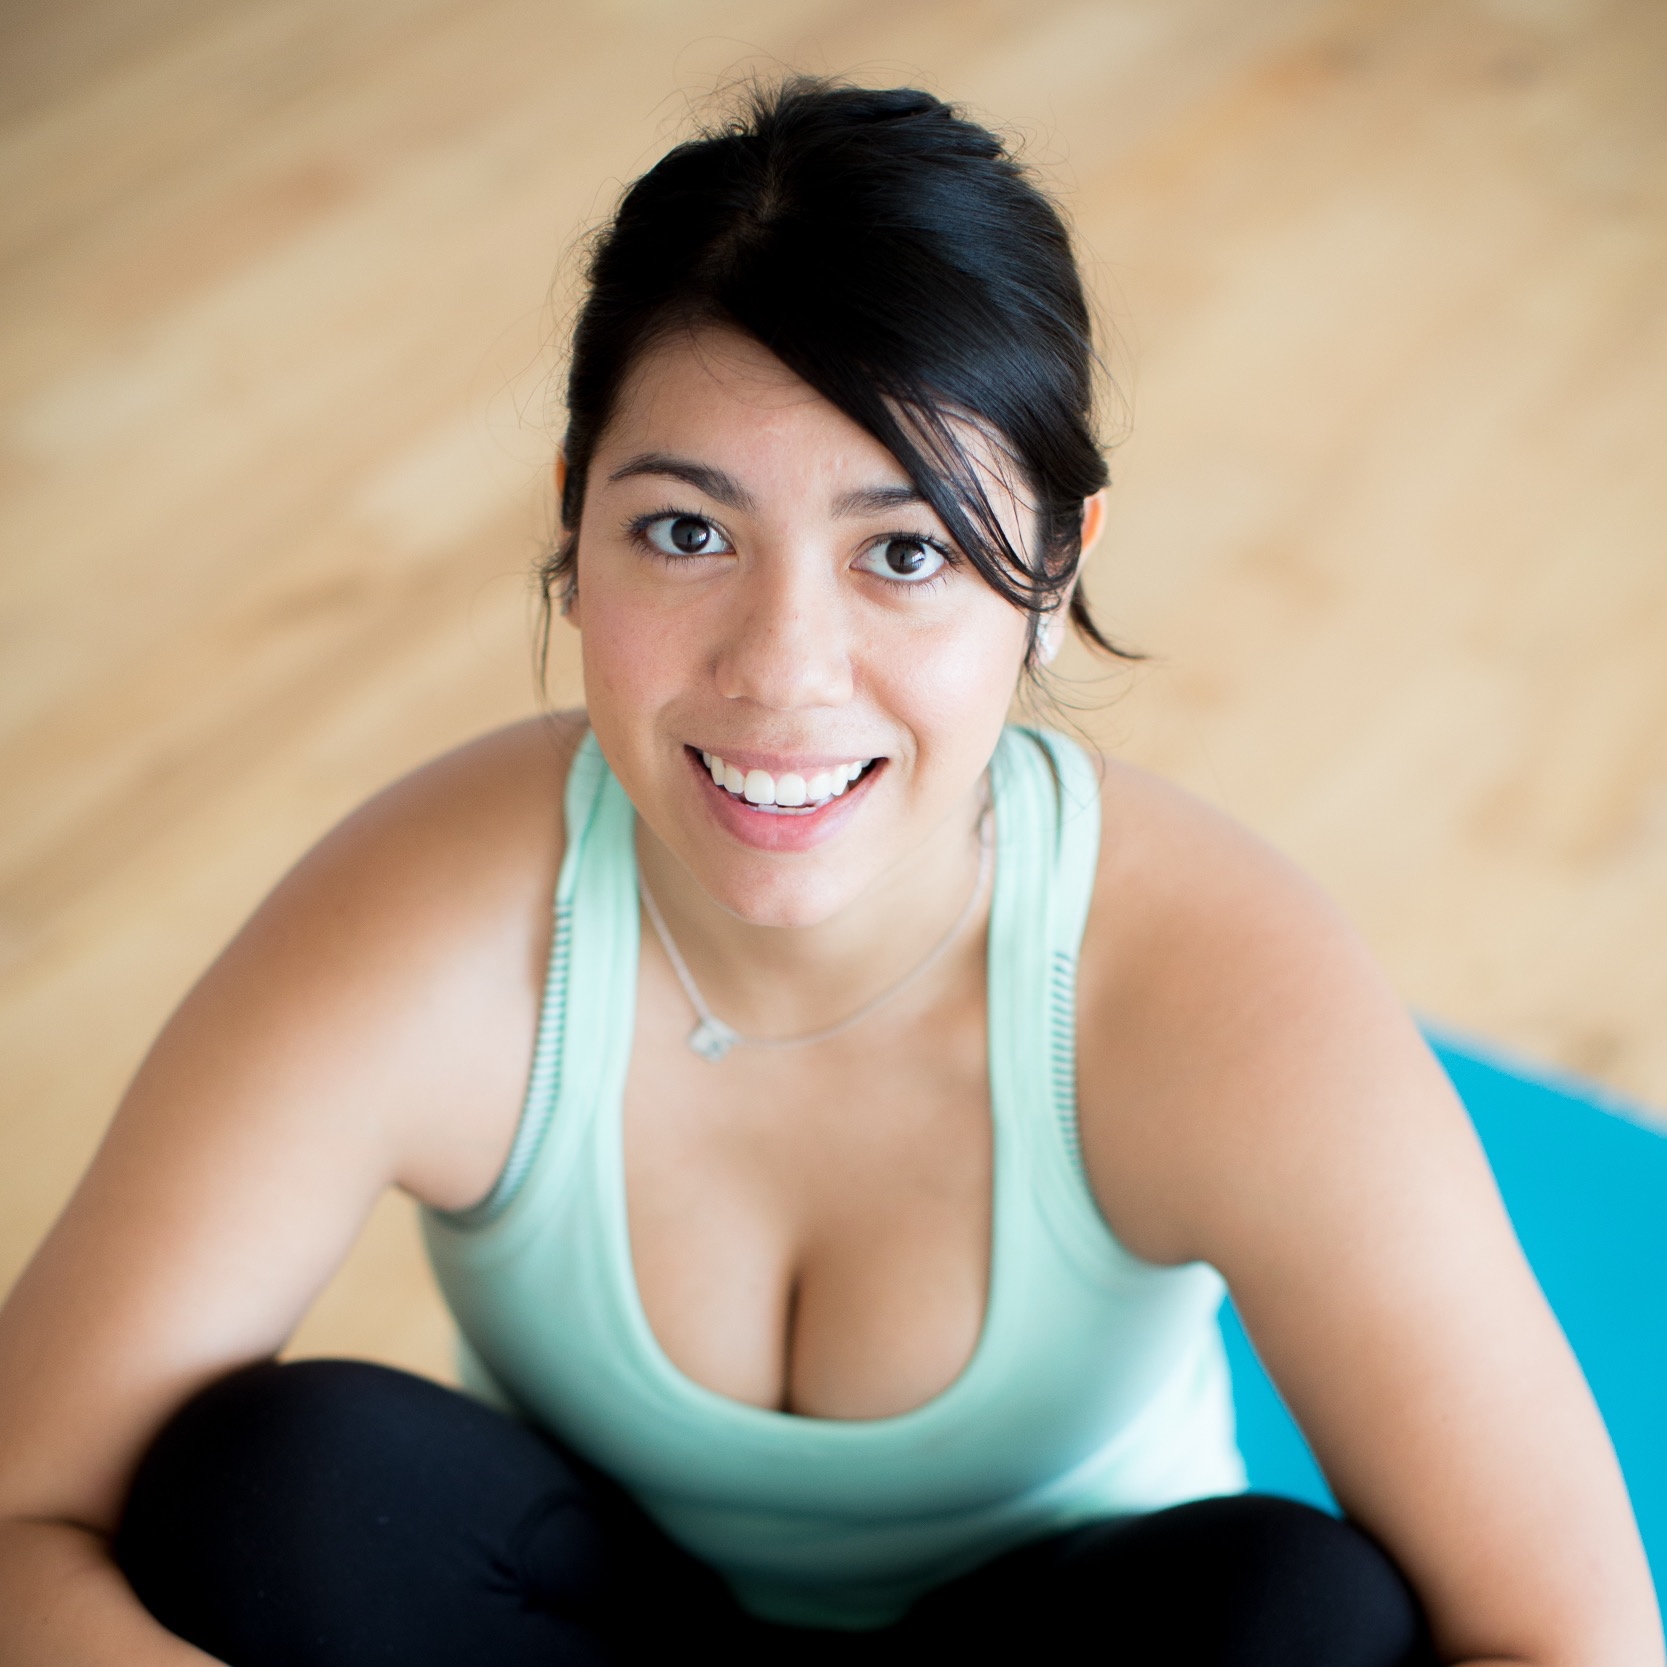 Tati - Yoga is a way for me to find clarity, peace of mind, and to move into action. I teach a functional anatomy style of yoga for mental health. I help you move in a way that feels good but also keeps you safe from injury and safe from the constant sitting of modern life. It is my hope that everyone who takes class will feel like they are celebrating what their body can do for them instead of cursing what it cant. I try to give you opportunities for you to see your own power and use it often enough that it becomes like second nature. We tune in to breath, sensation, and self to become better prepared for the world and our place in it.